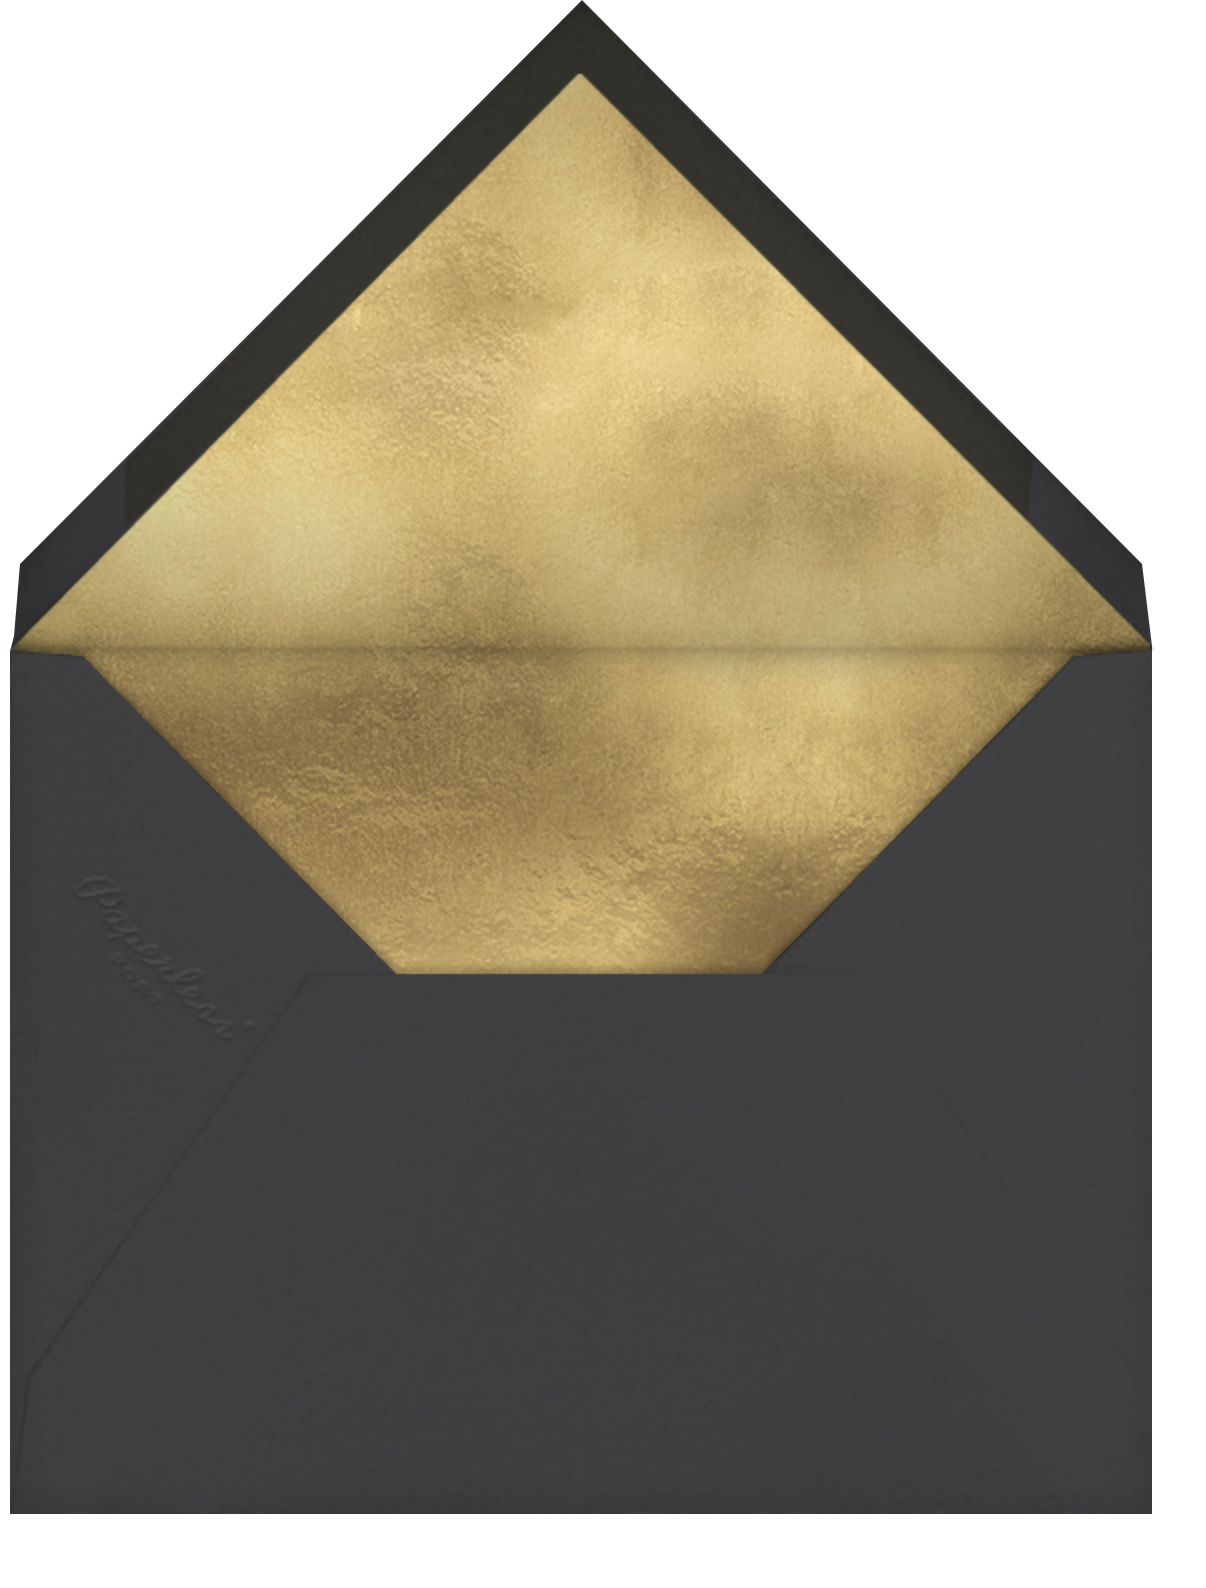 Miramar - Jonathan Adler - Bar and bat mitzvah - envelope back